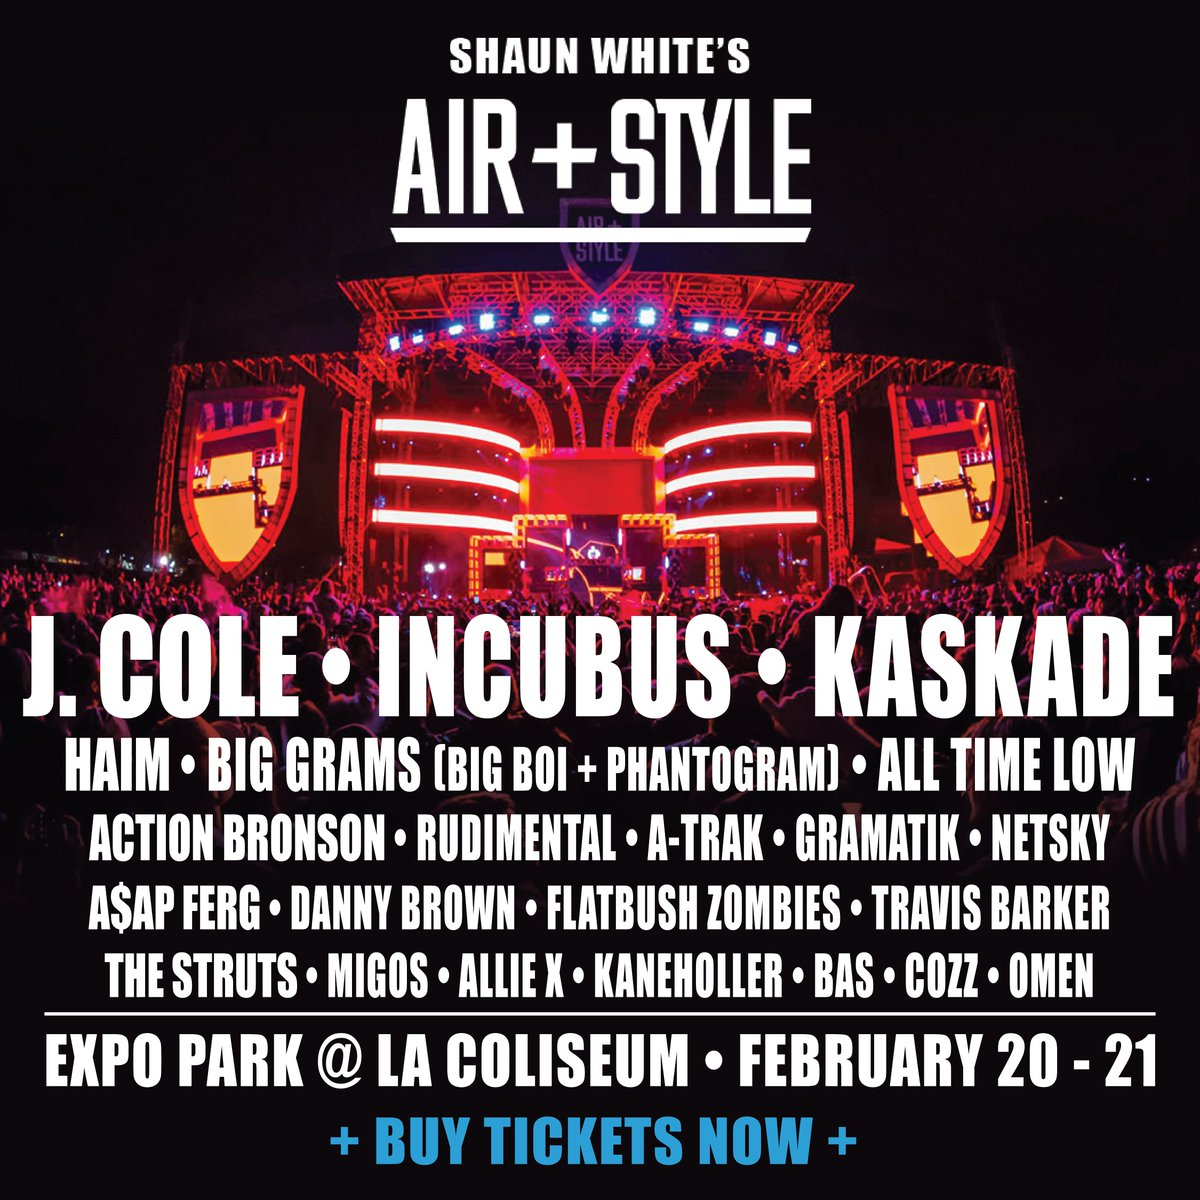 9 days till #airandstyle #losangeles w/ @JColeNC @kaskade @IncubusBand + more. Tickets -> https://t.co/M3HnQYg70P https://t.co/nsN9IqxD4h